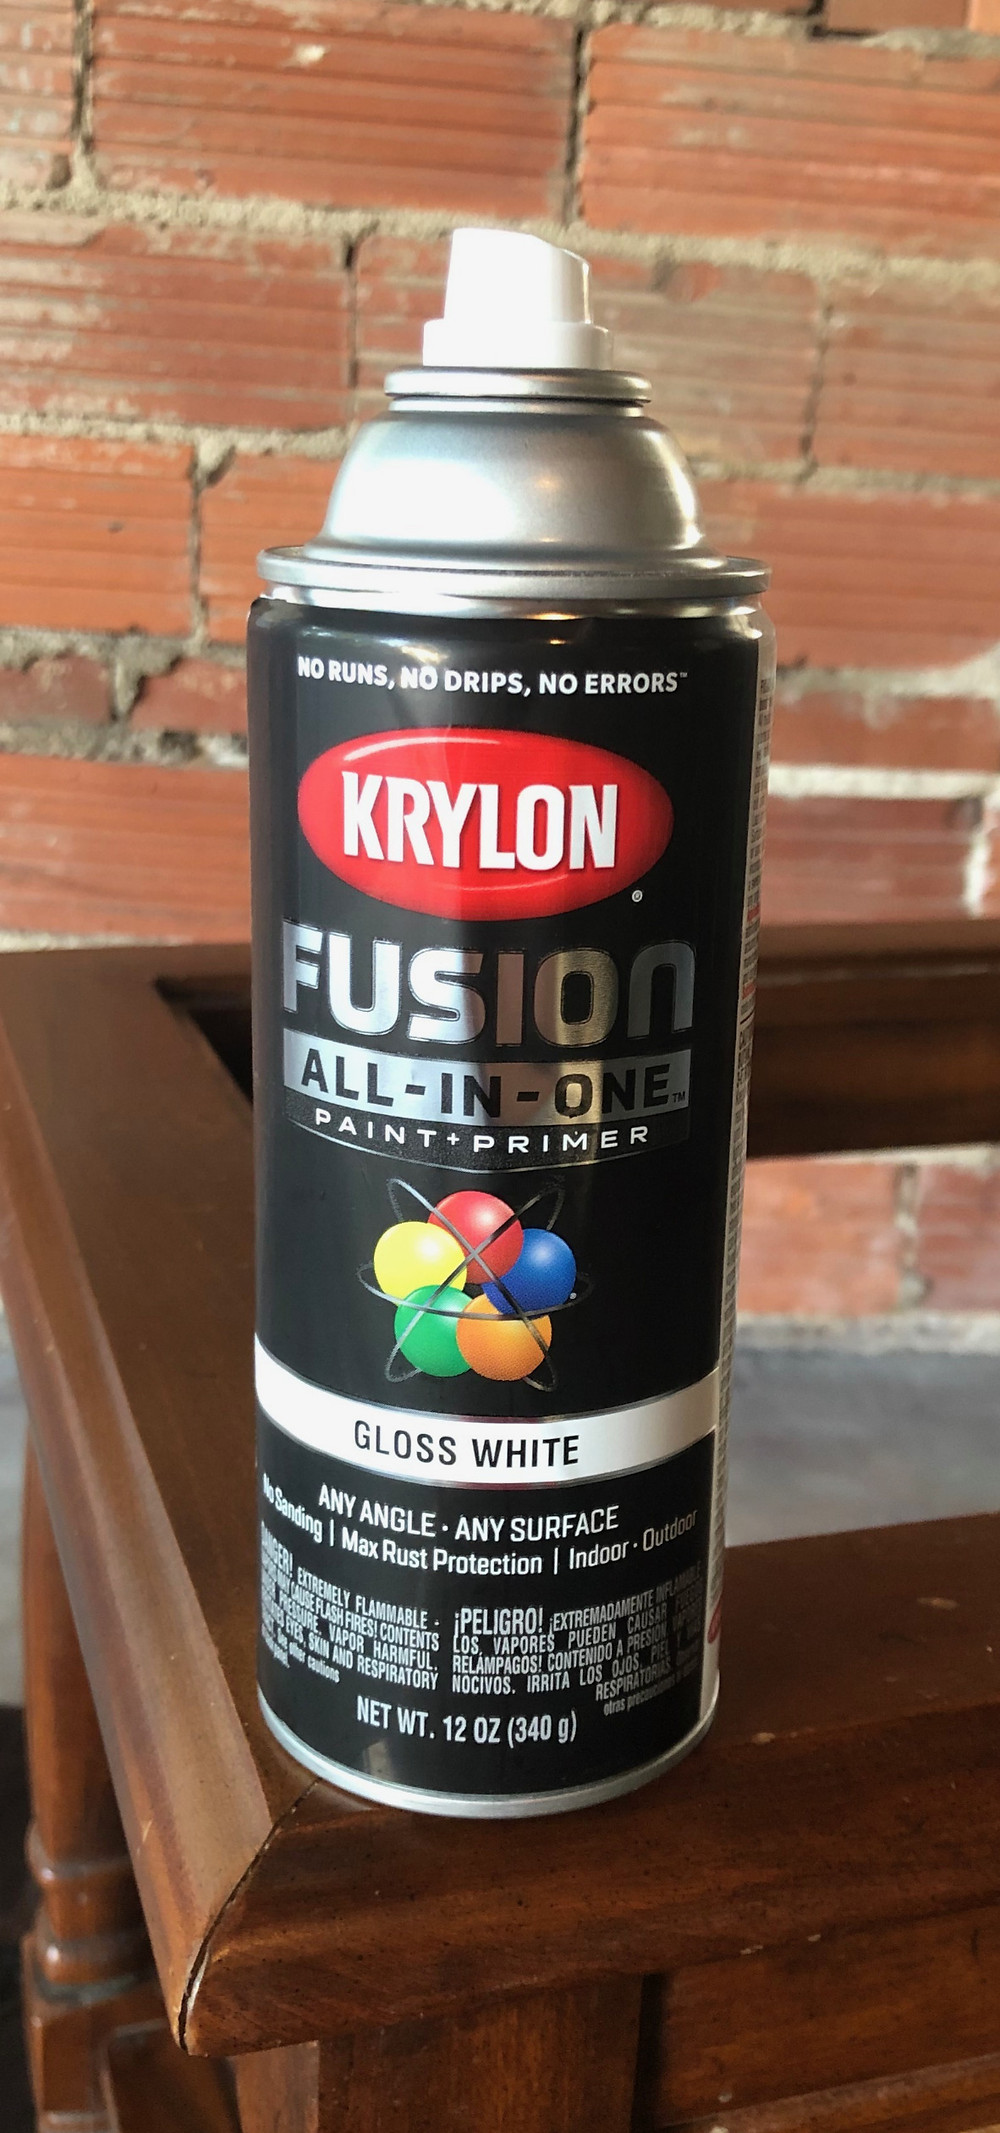 Krylon high gloss white spray paint